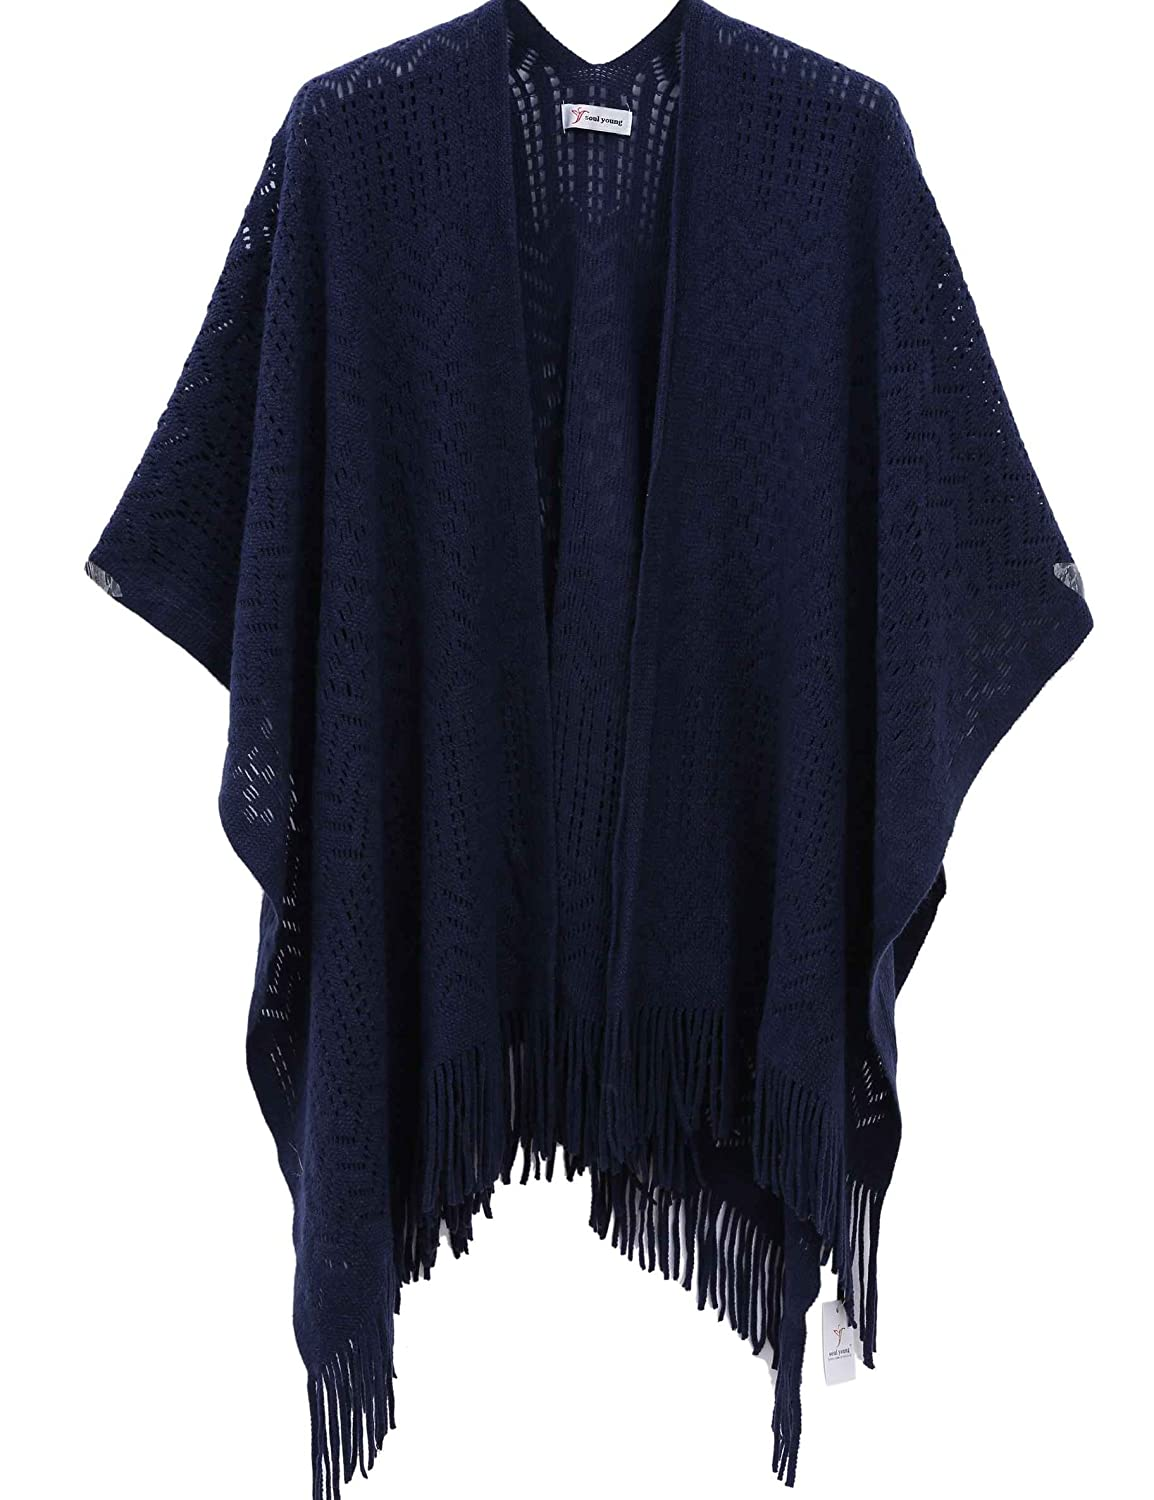 13793a88e1ef1e Knit Shawl Wrap for Women - Soul Young Ladies Fringe Knitted Poncho Blanket  Cardigan Cape(One Size